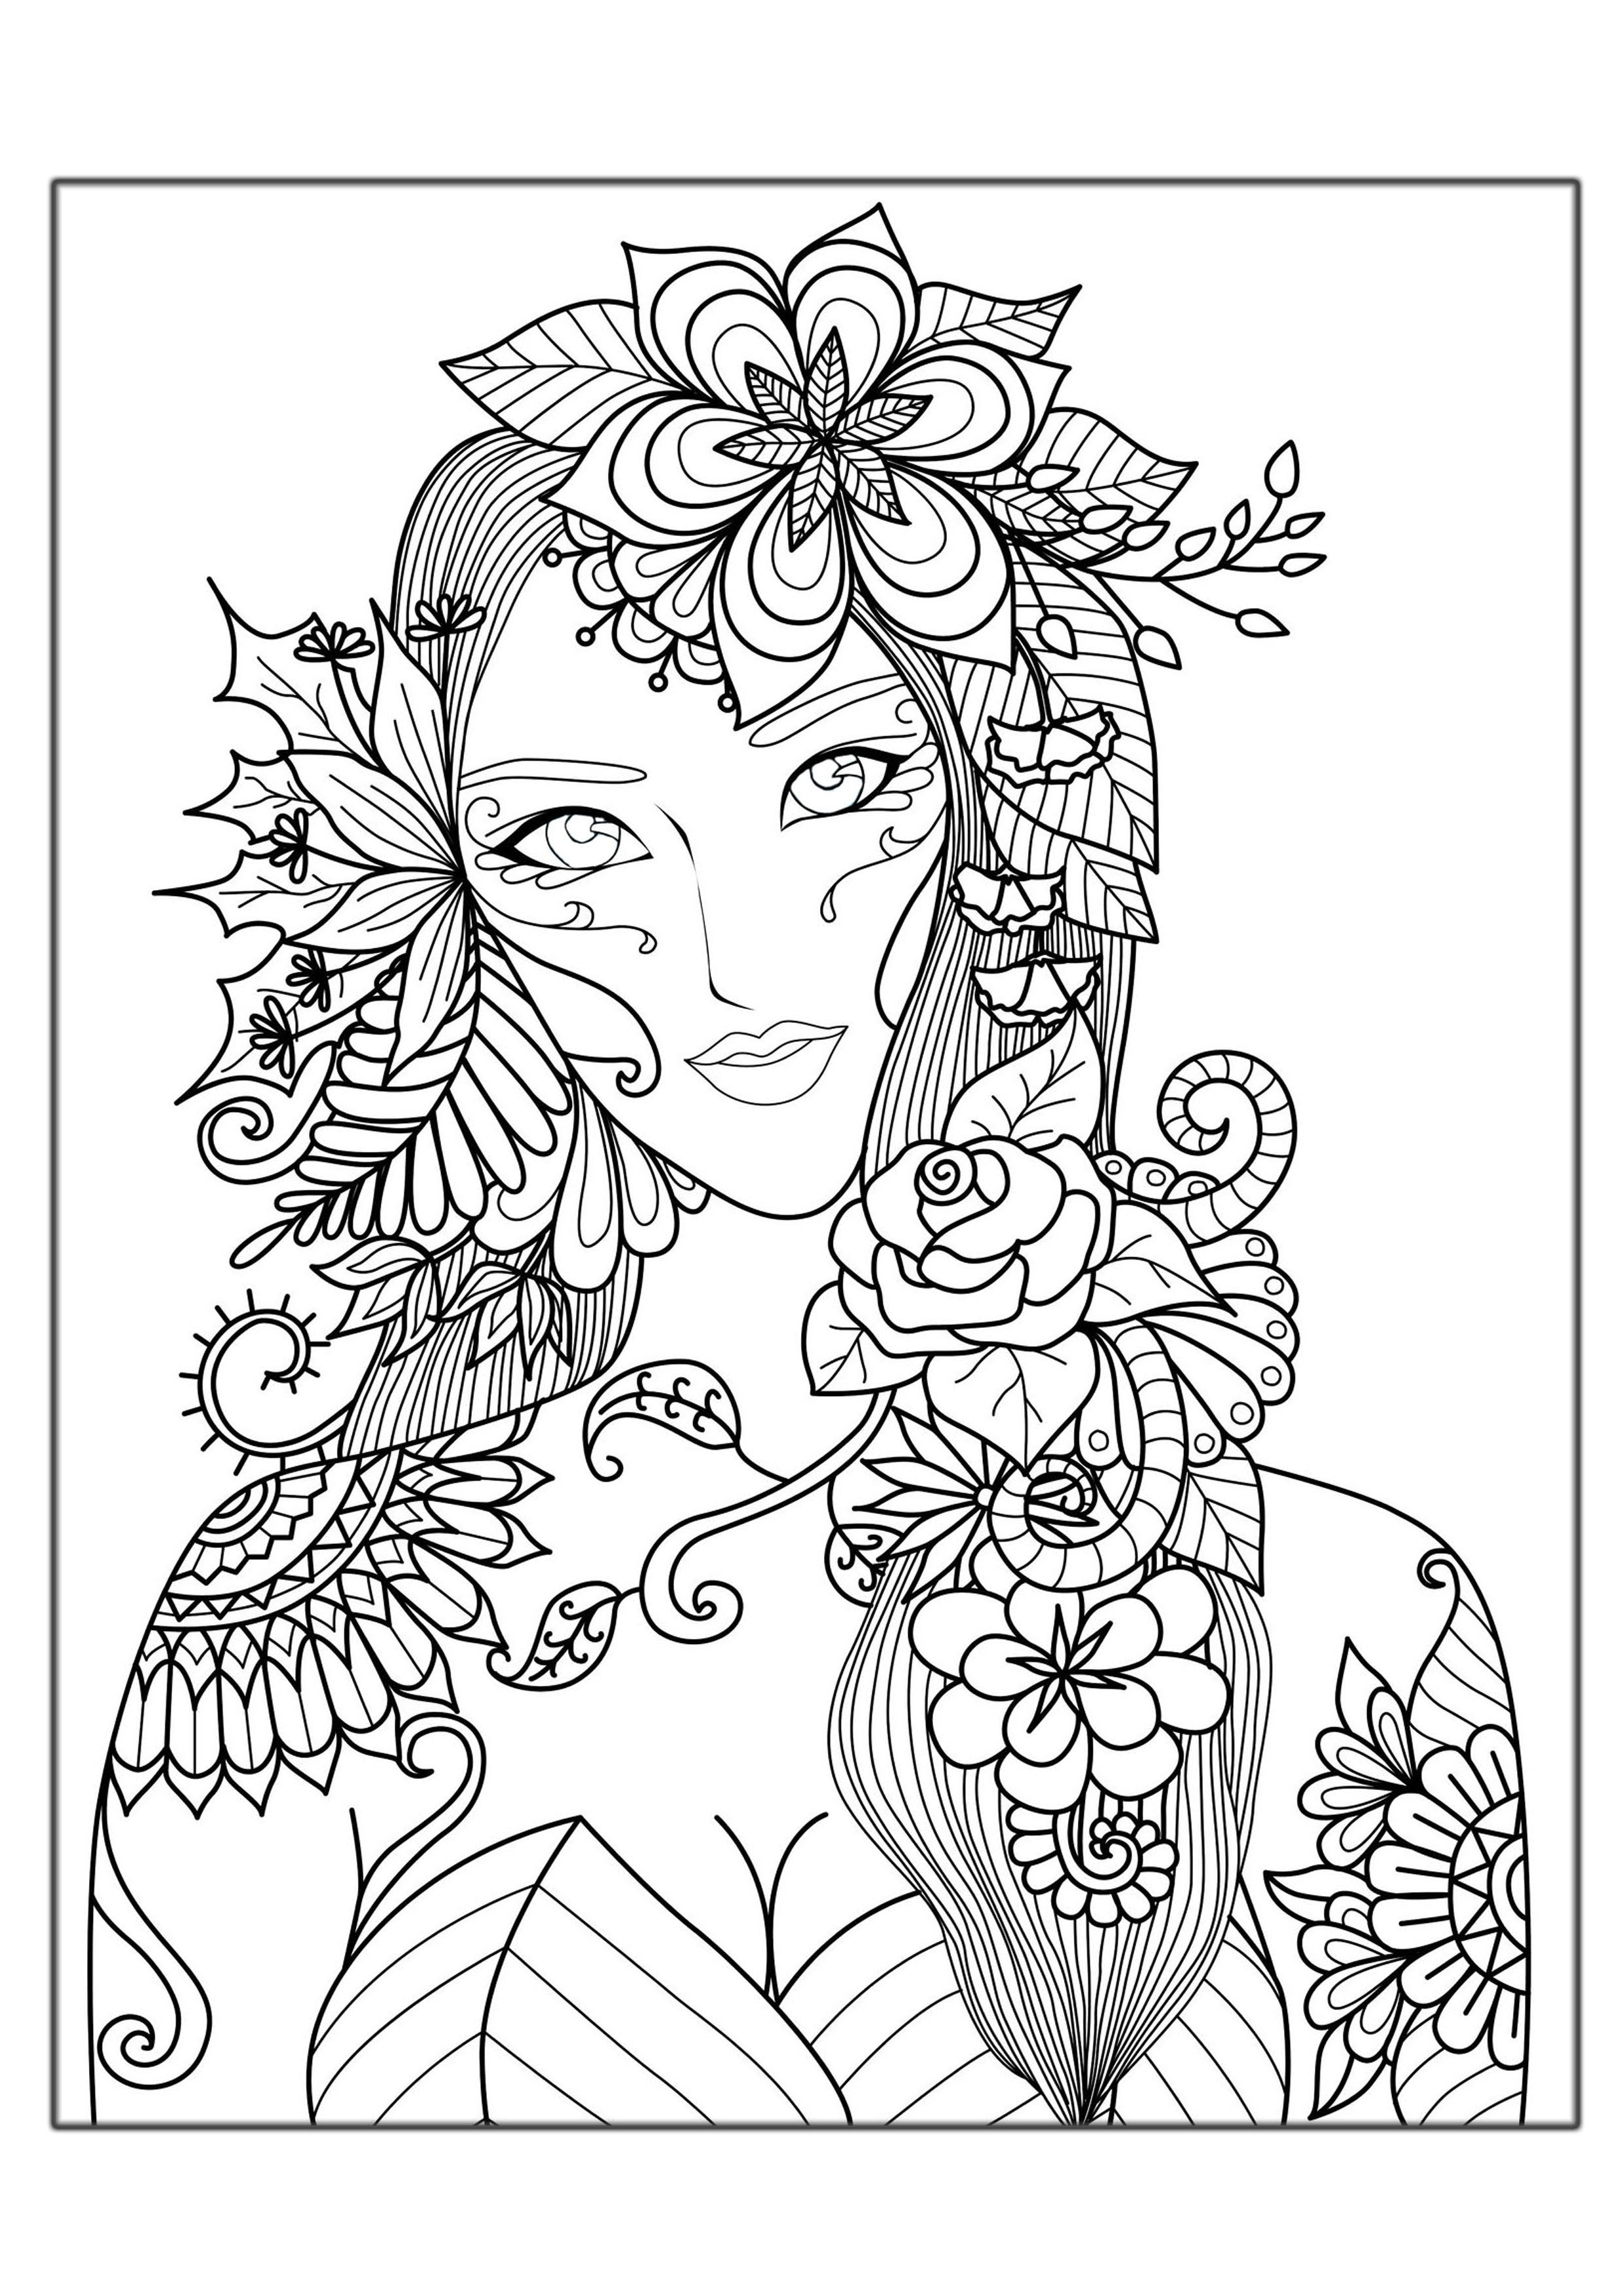 adult coloring pages free pin on coloring adult pages coloring free